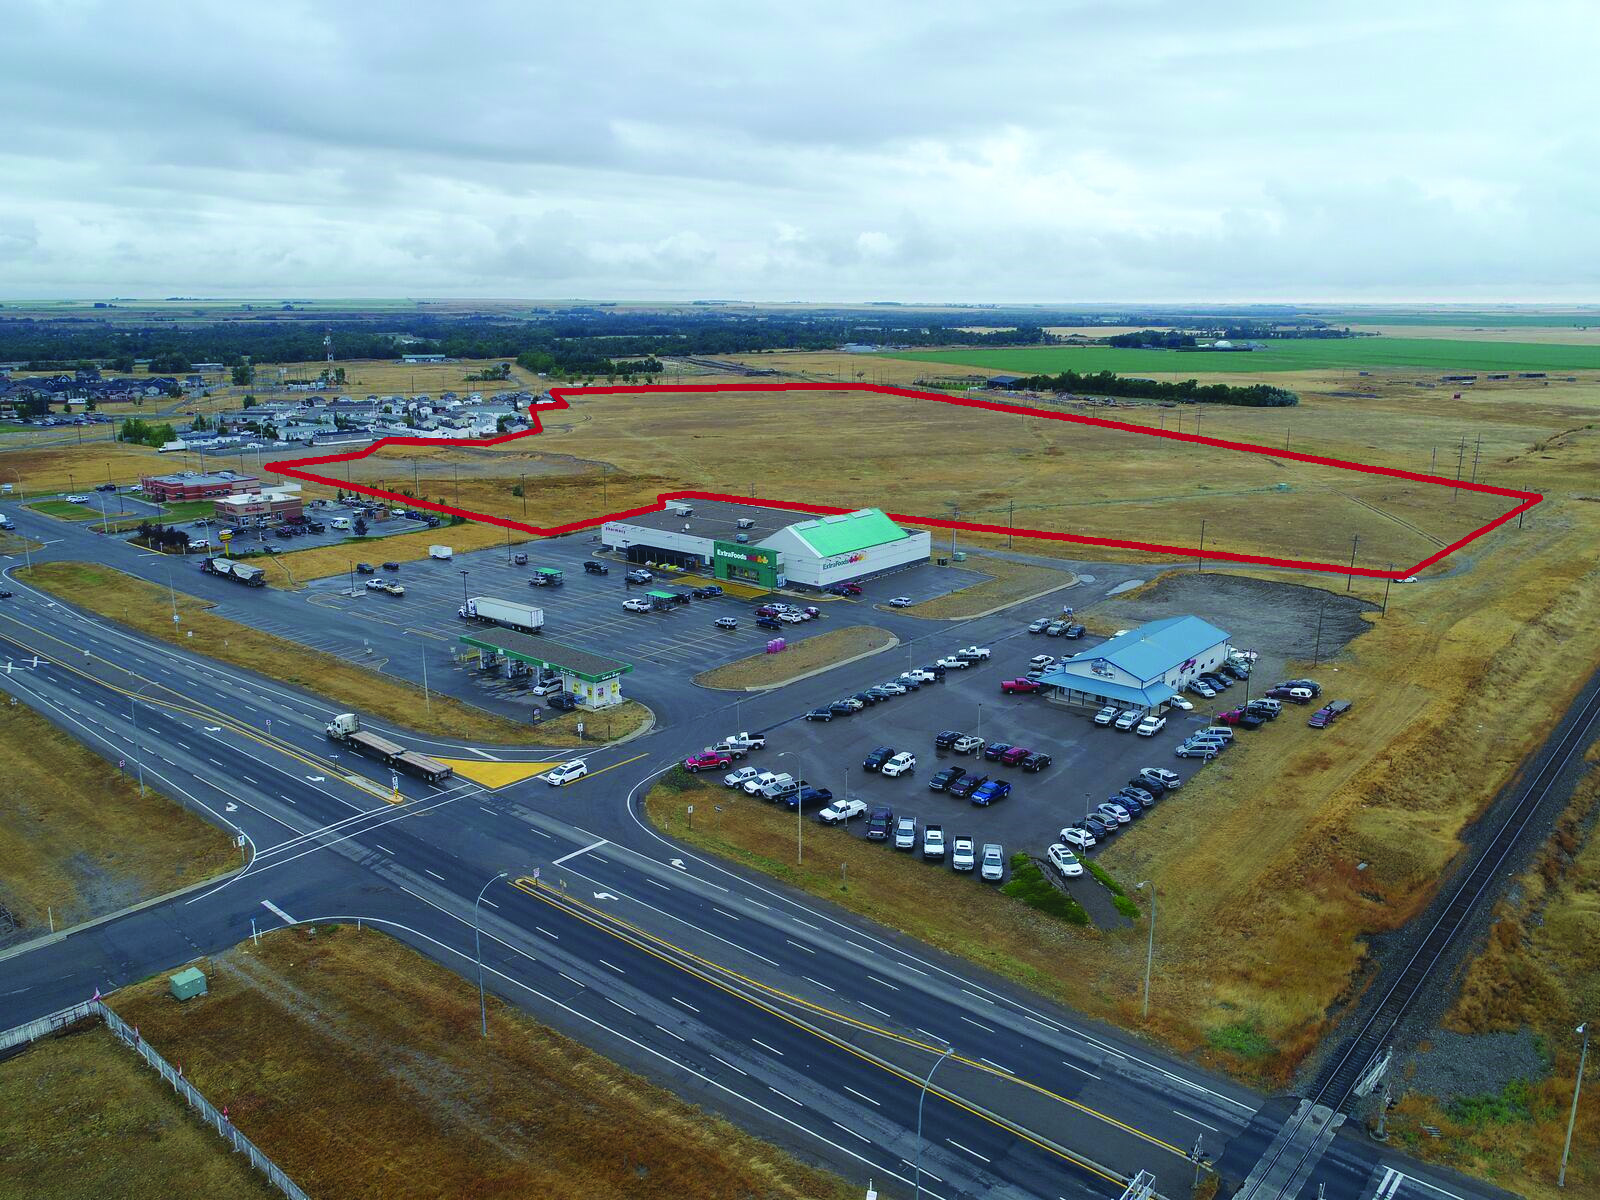 44 Acres at Entrance to Fort Macleod